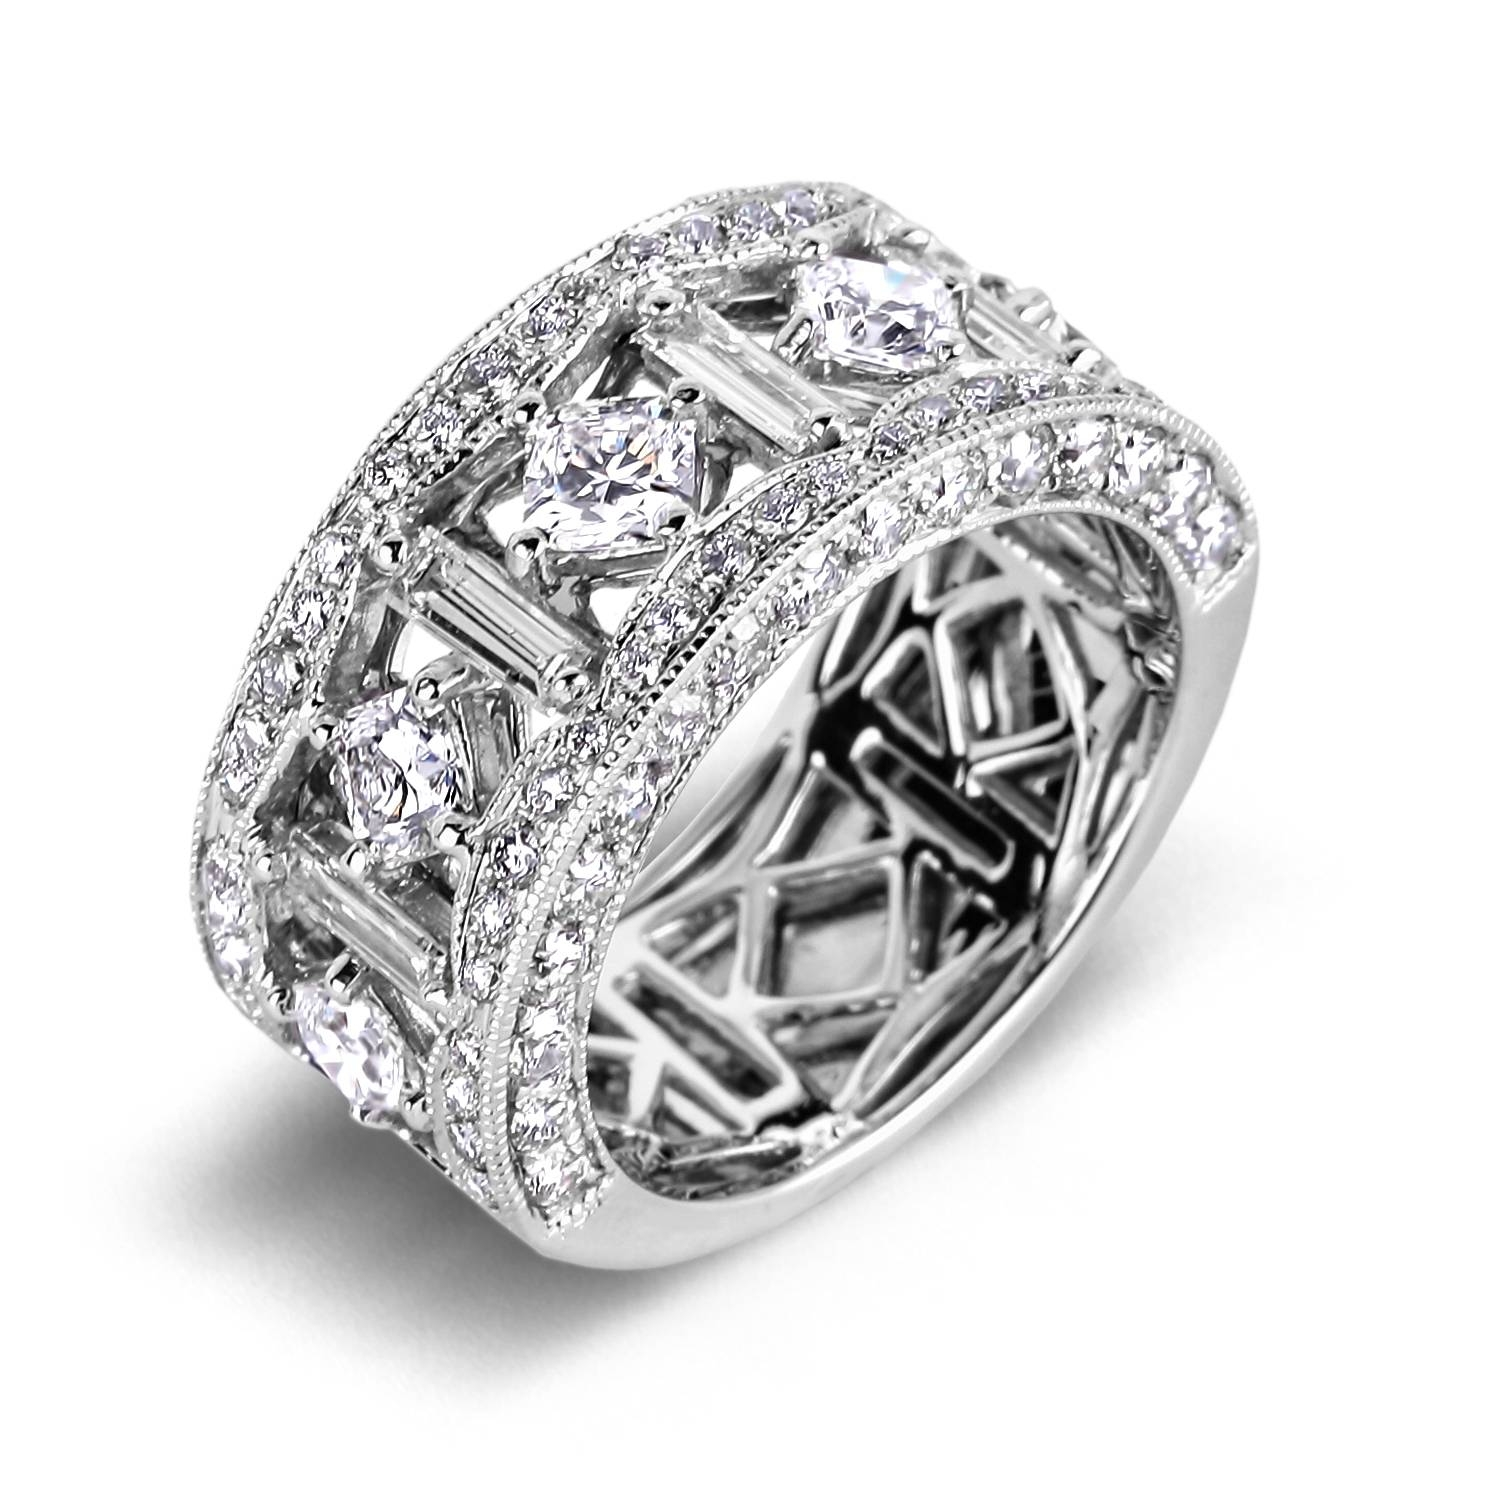 17+ Images About 10 Year Anniversary Rings On Pinterest | White With Regard To Most Recently Released White Gold Anniversary Rings (View 5 of 25)